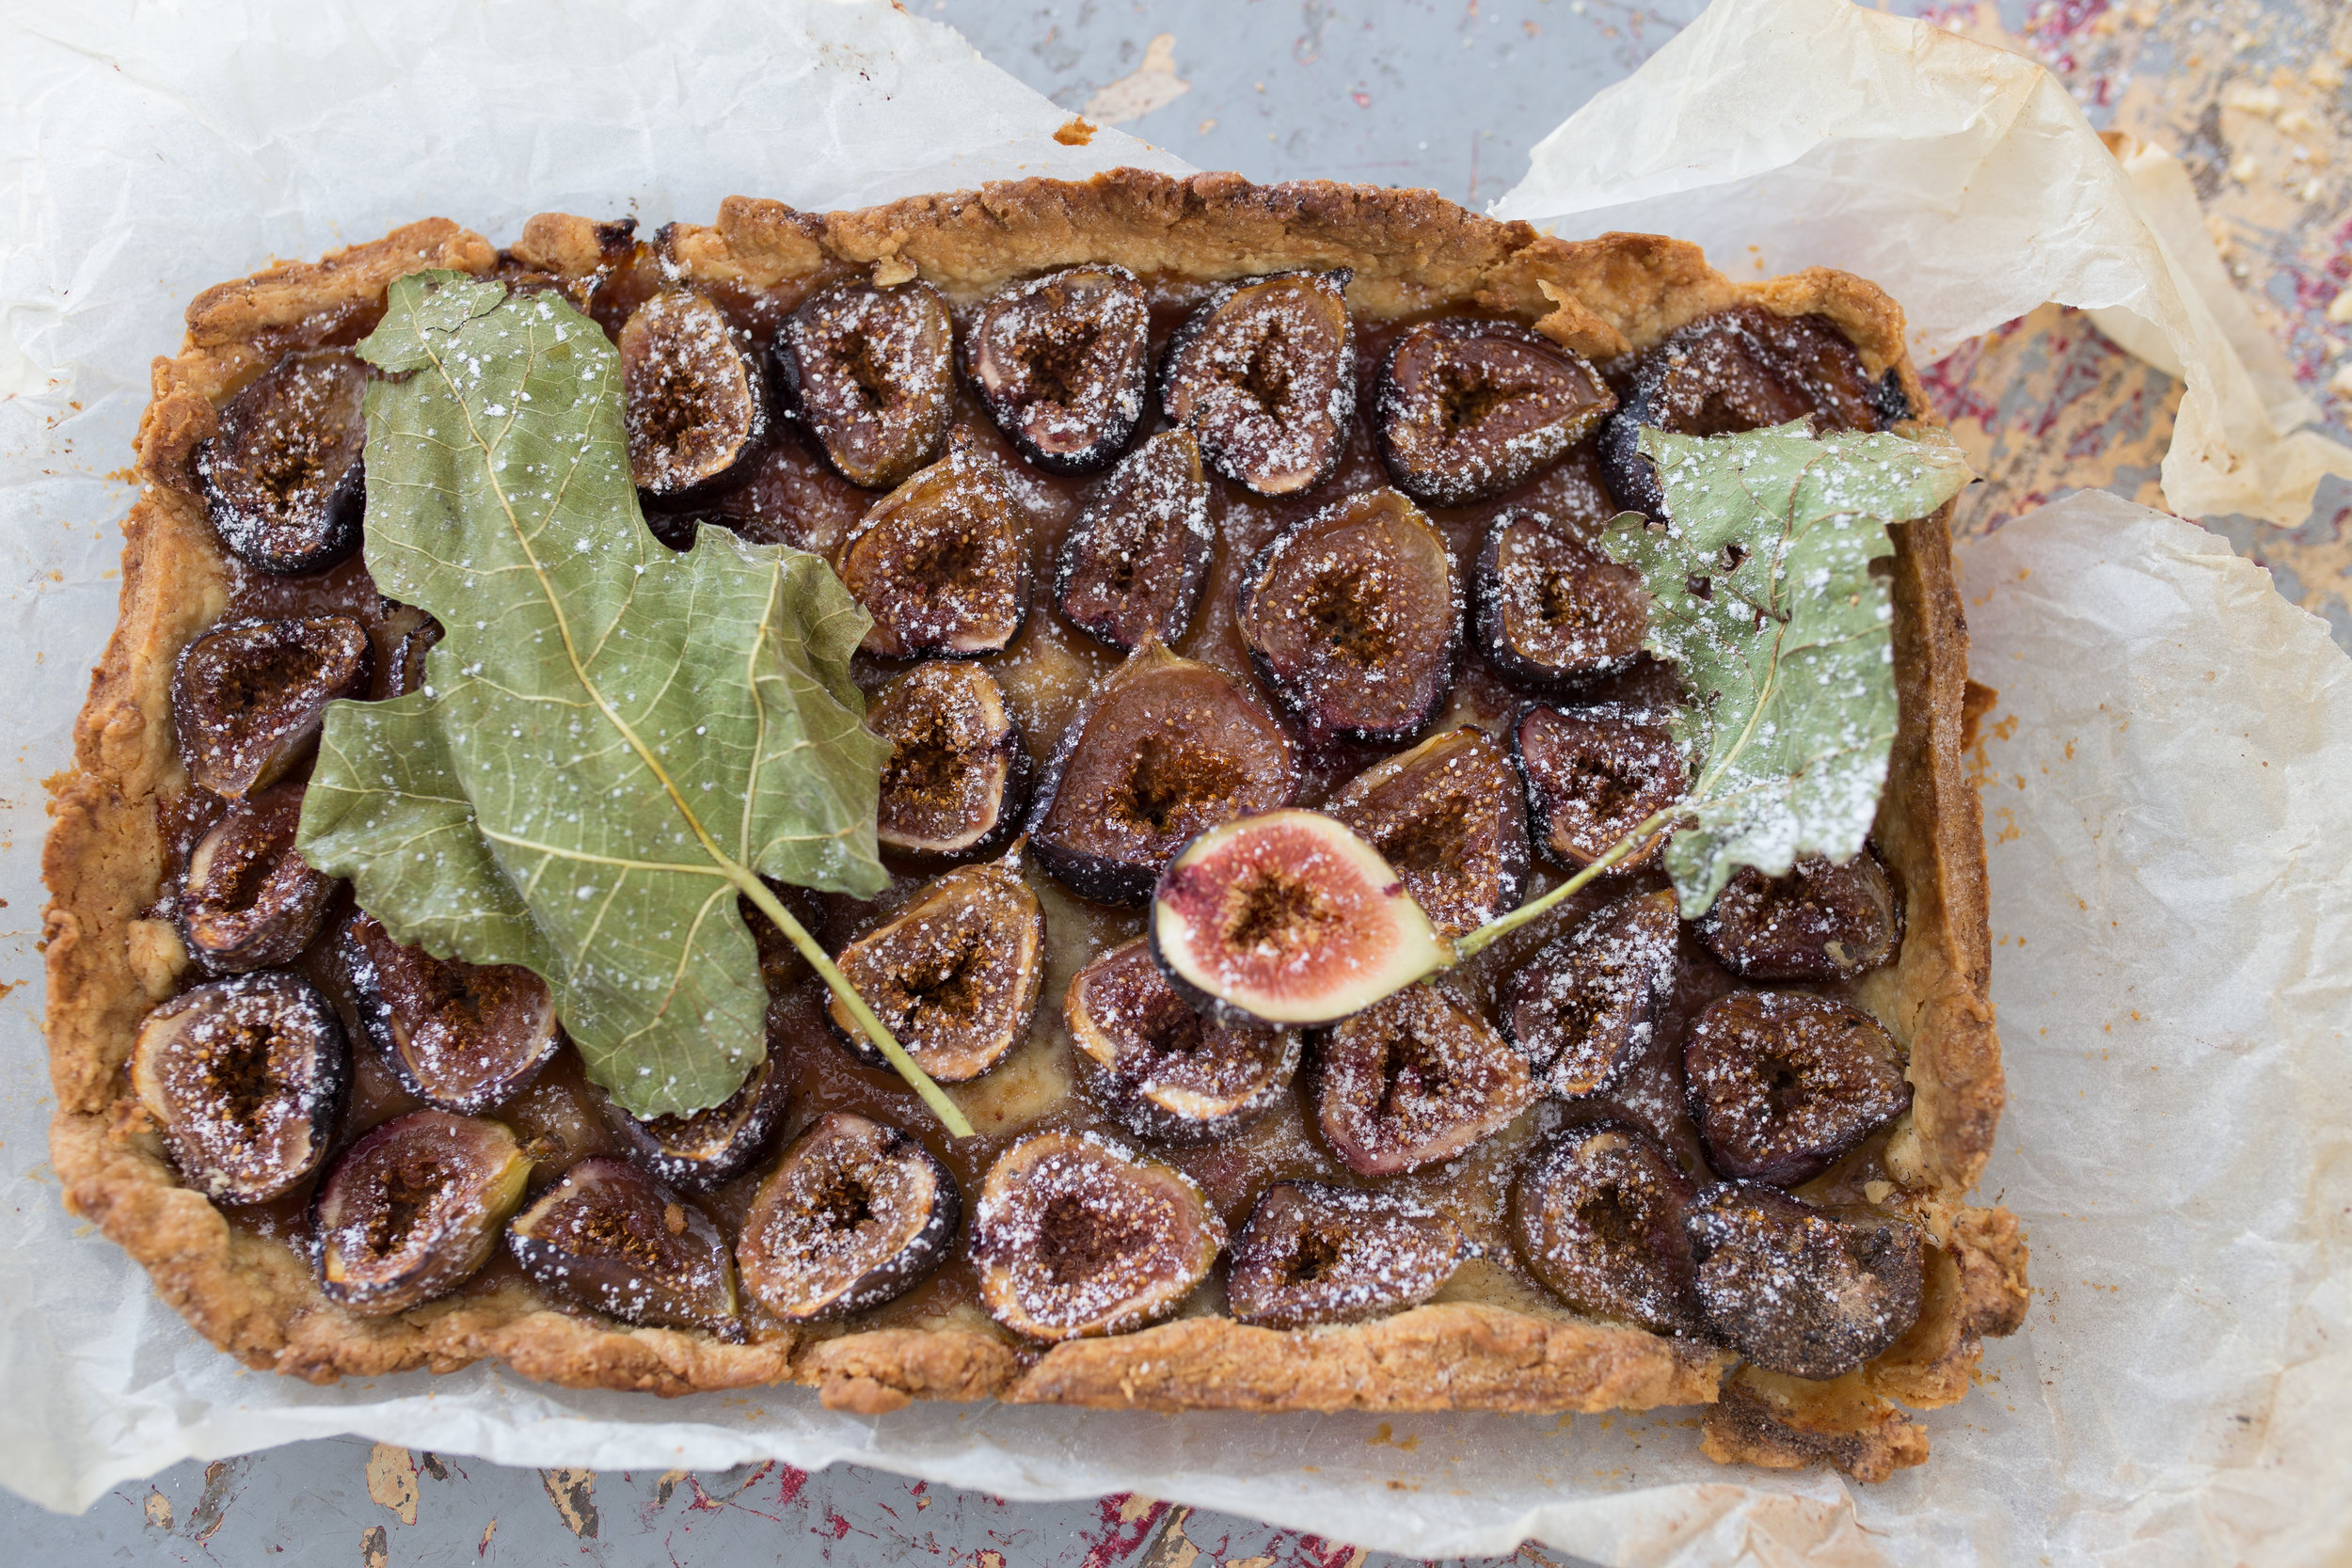 Fig tart after the oven. Gillian convinced a builder to have a piece even though he had never eater a fig before.